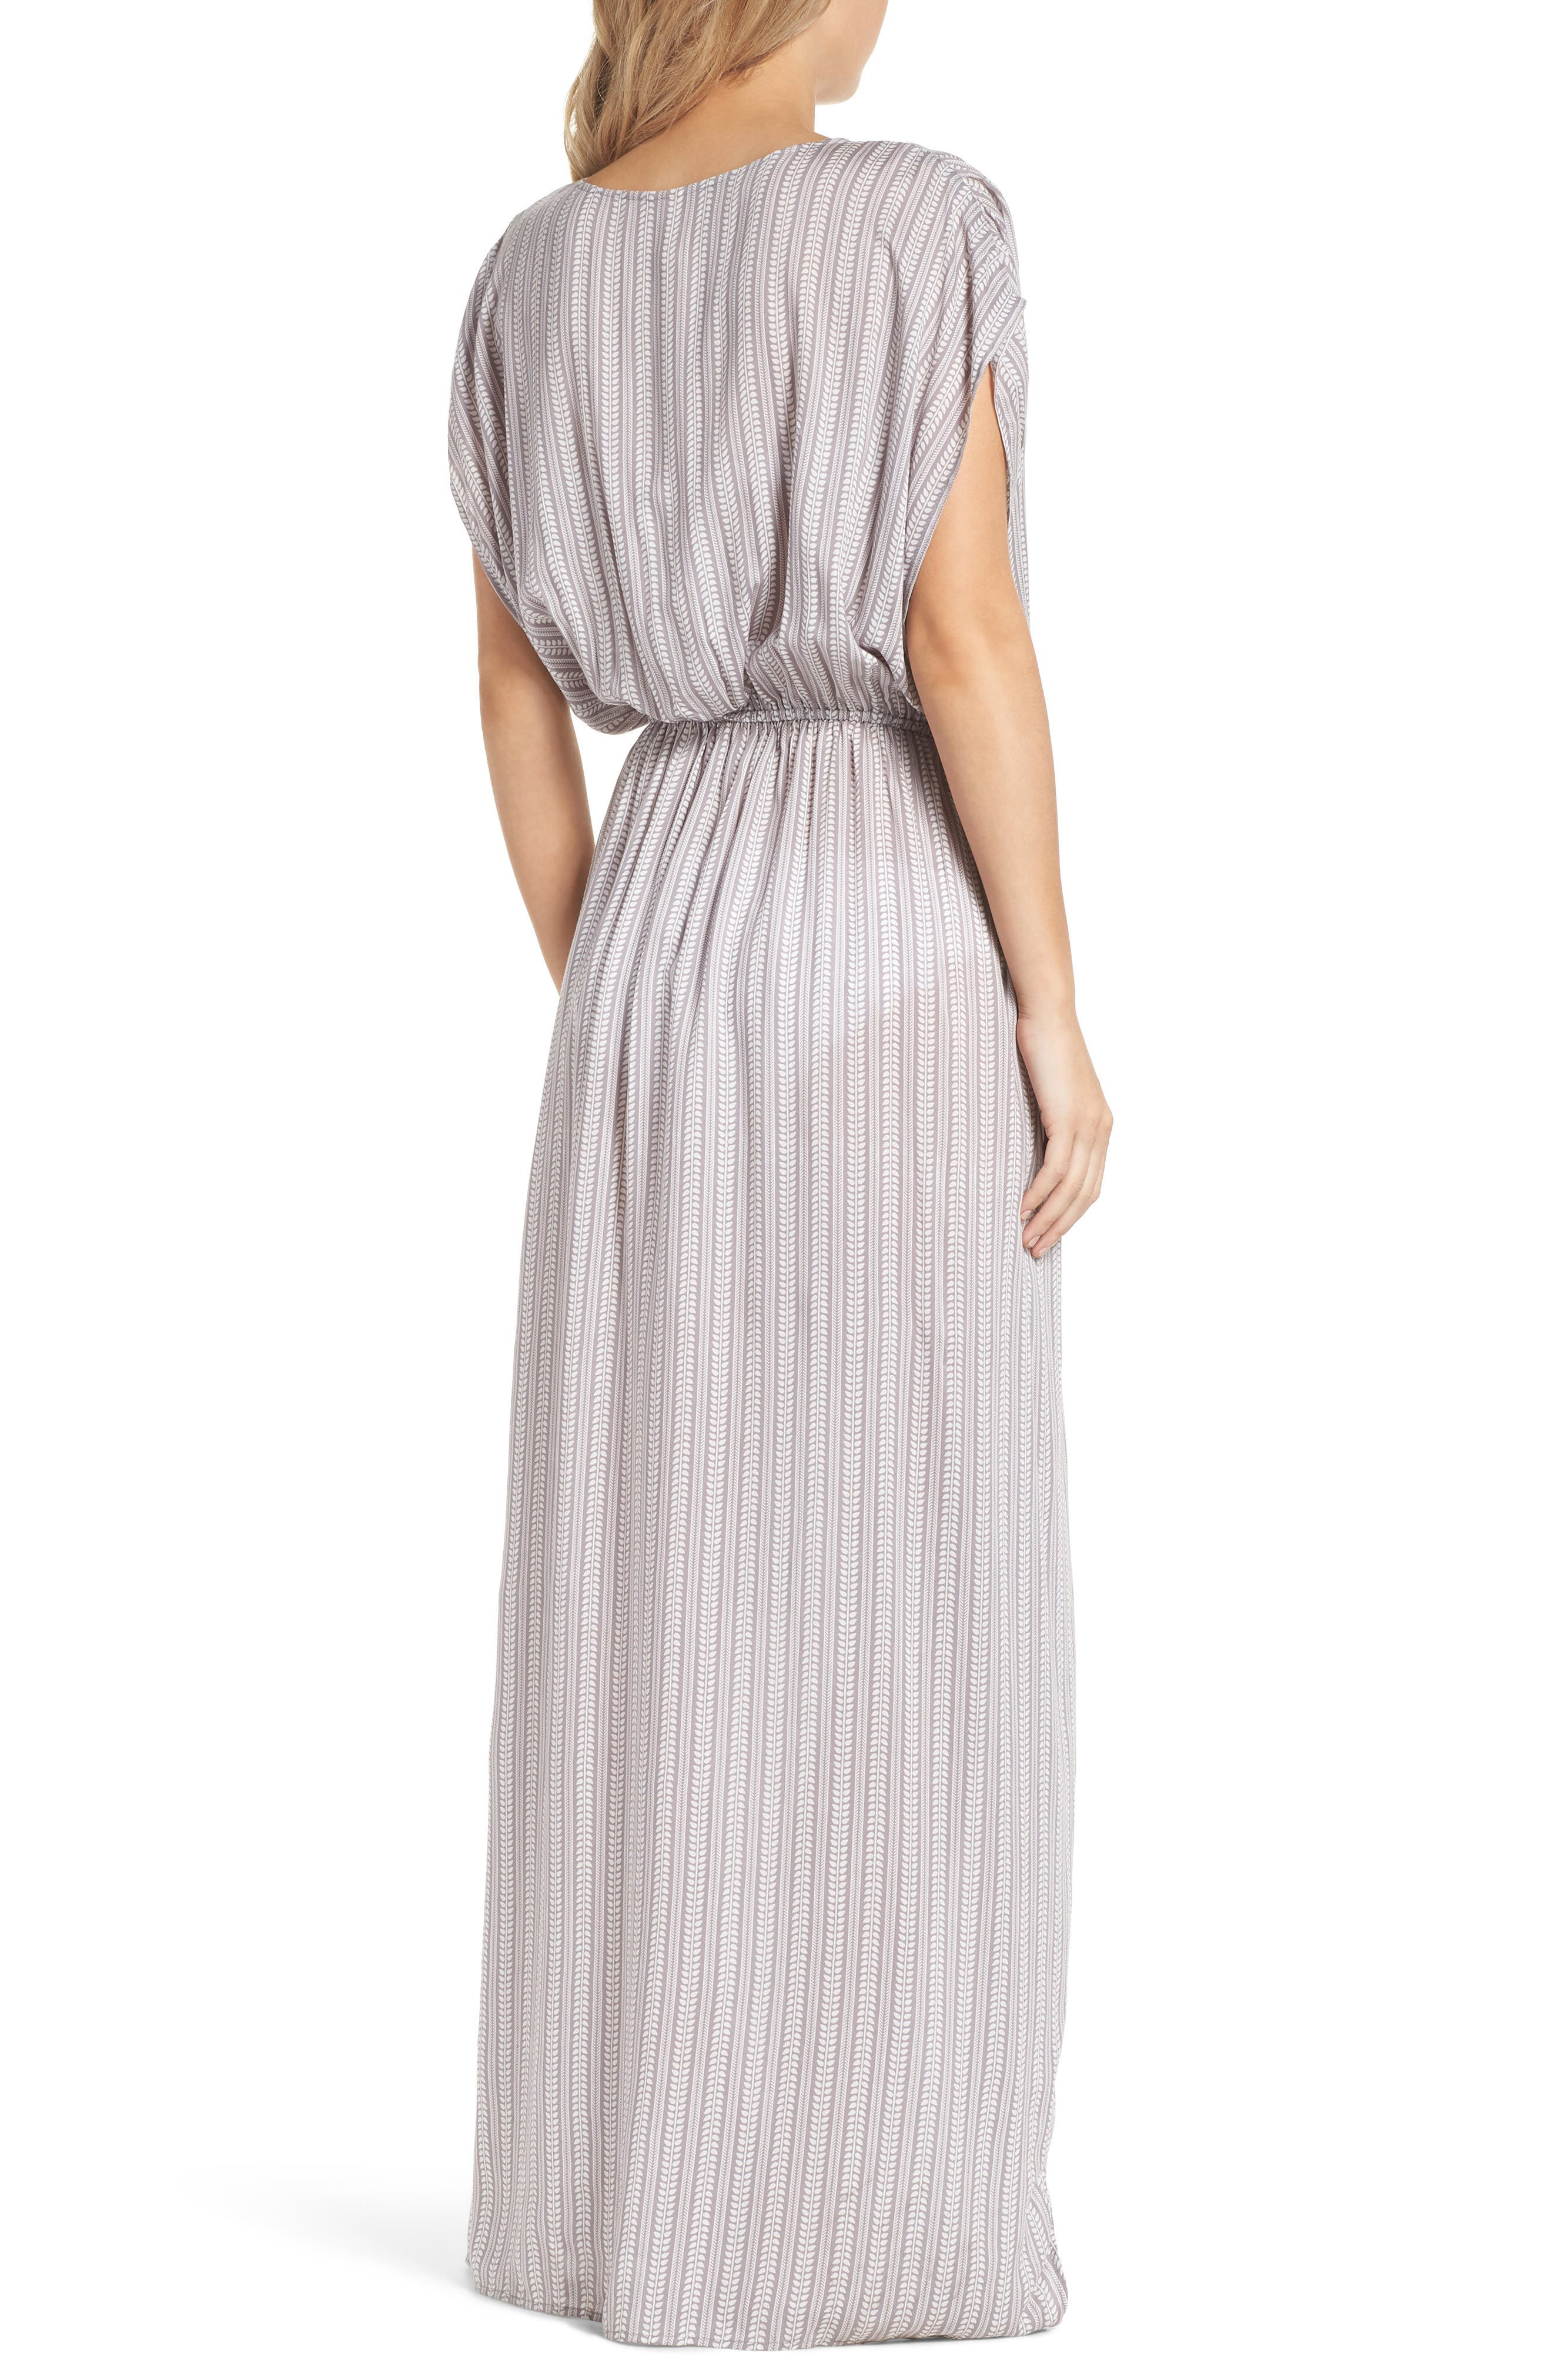 Wrap Maxi Cover-Up Dress,                             Alternate thumbnail 2, color,                             Makoto Grey